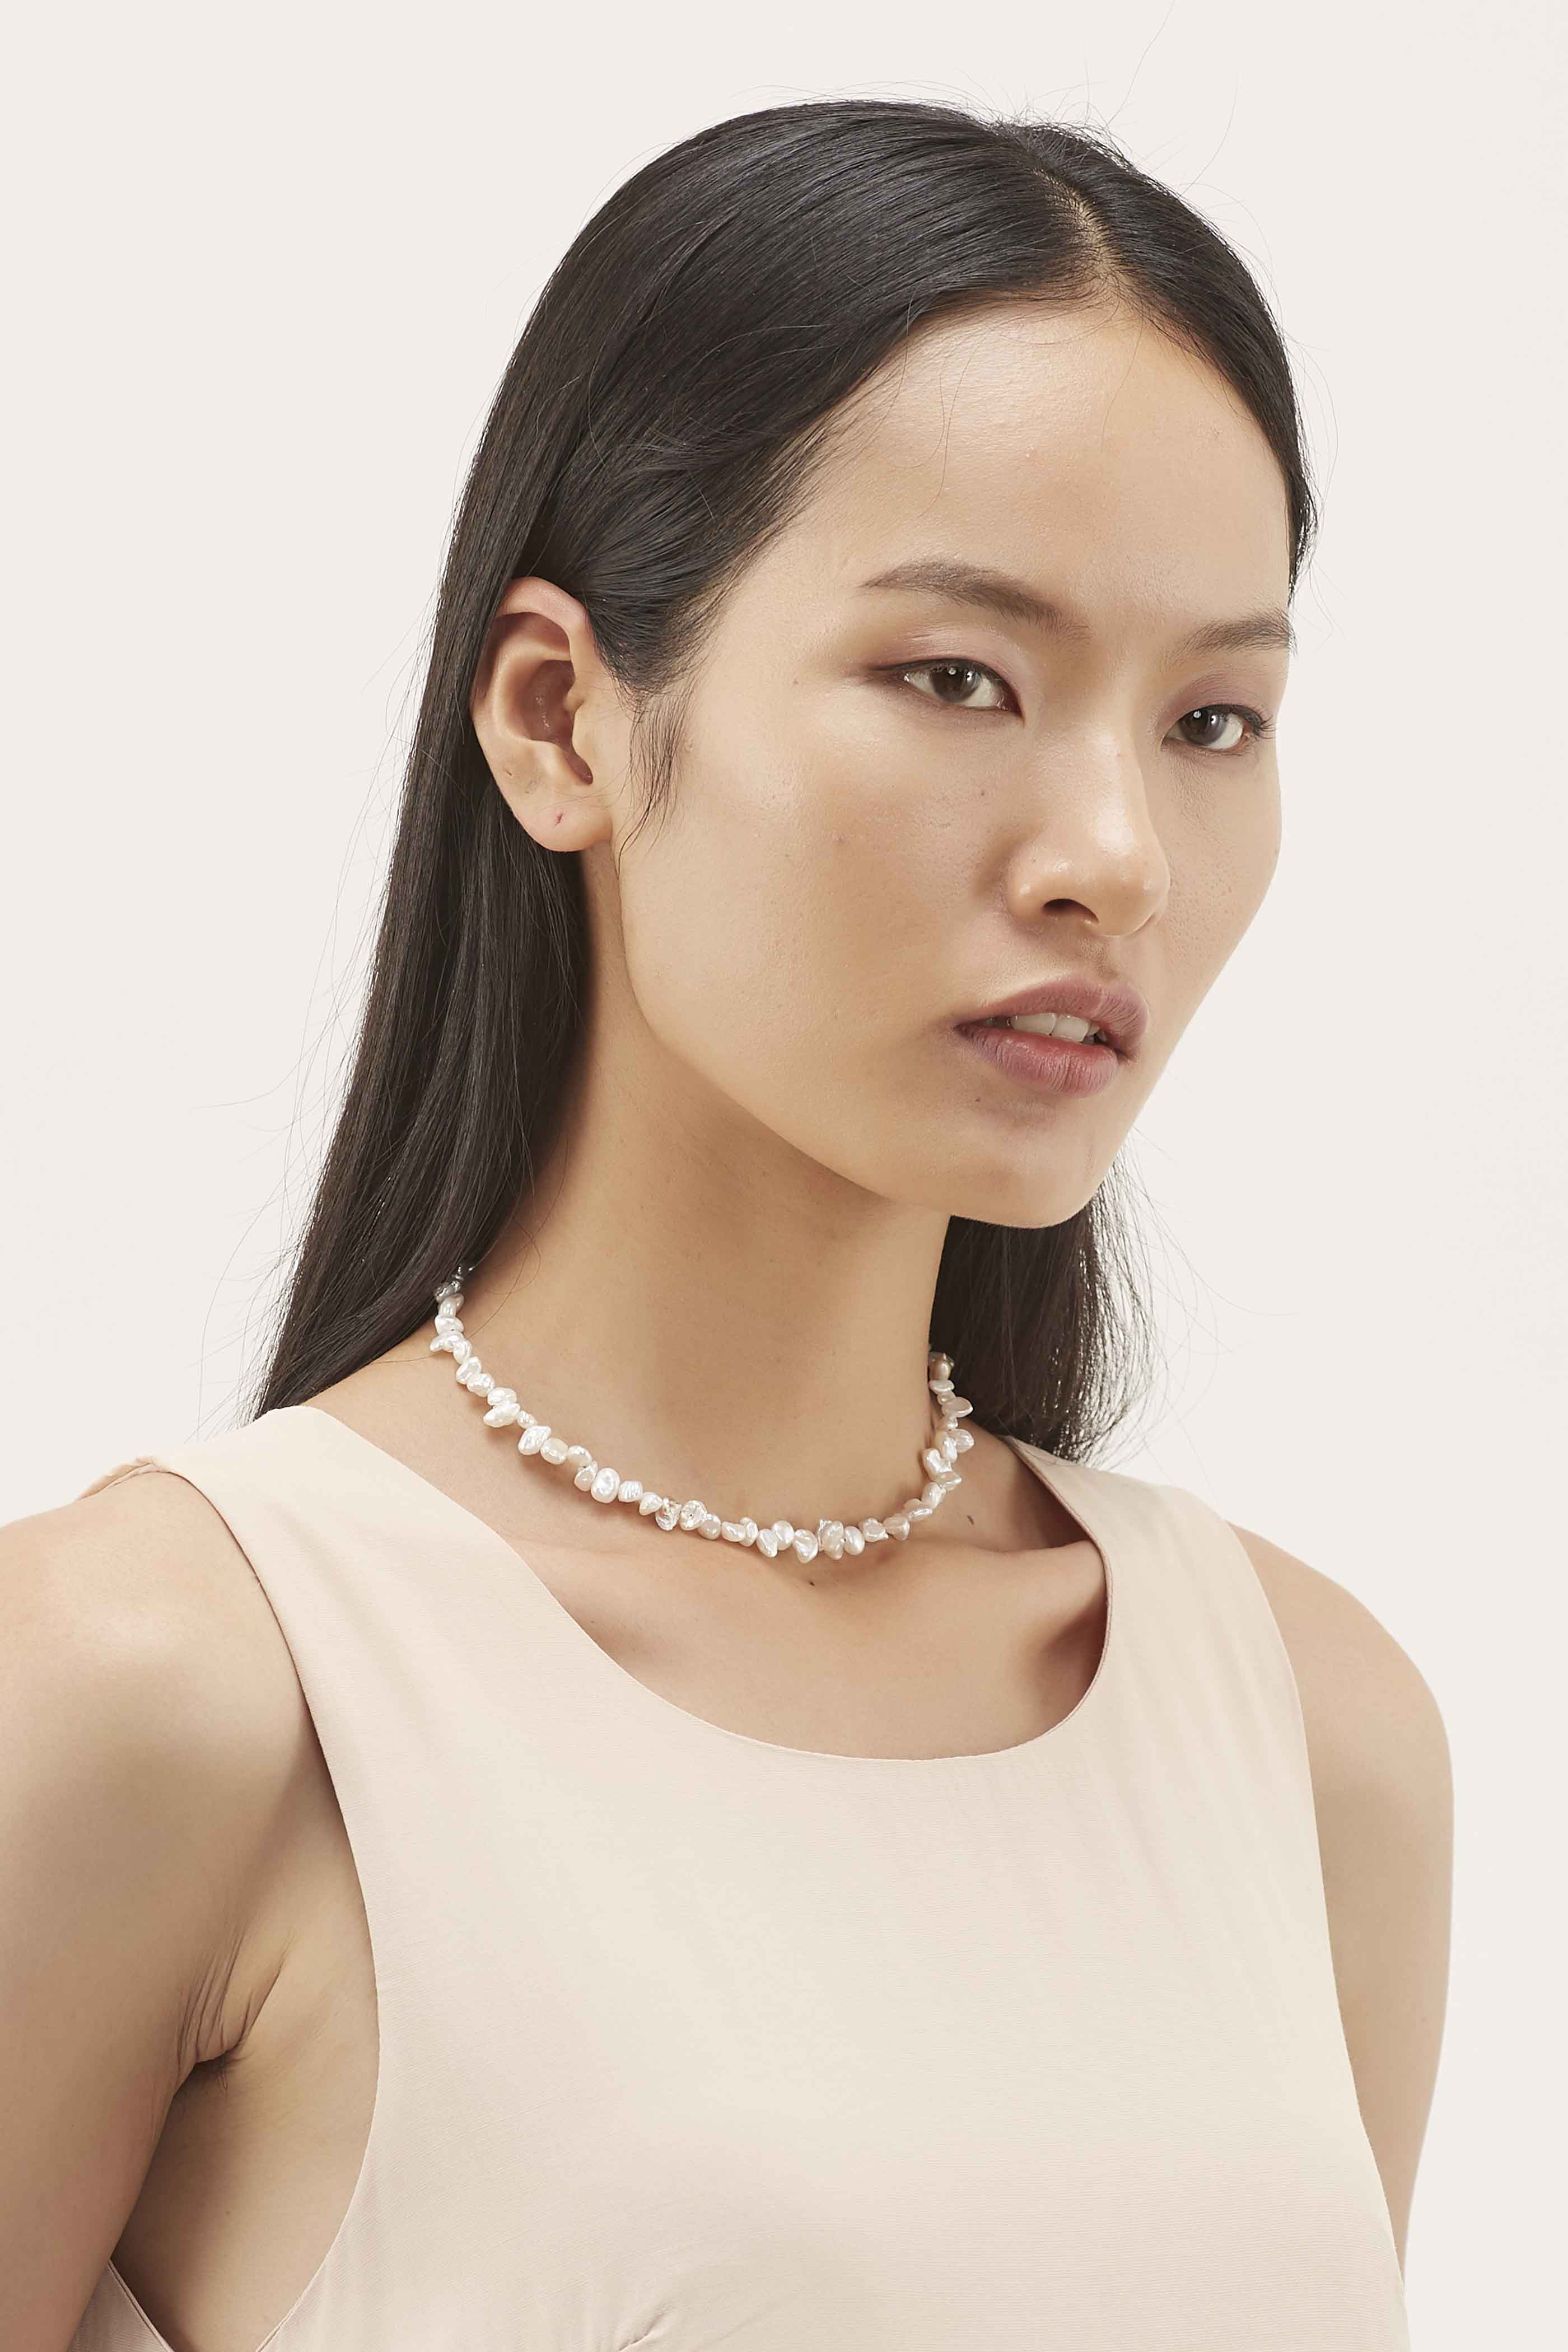 Adrienna Pearl Necklace